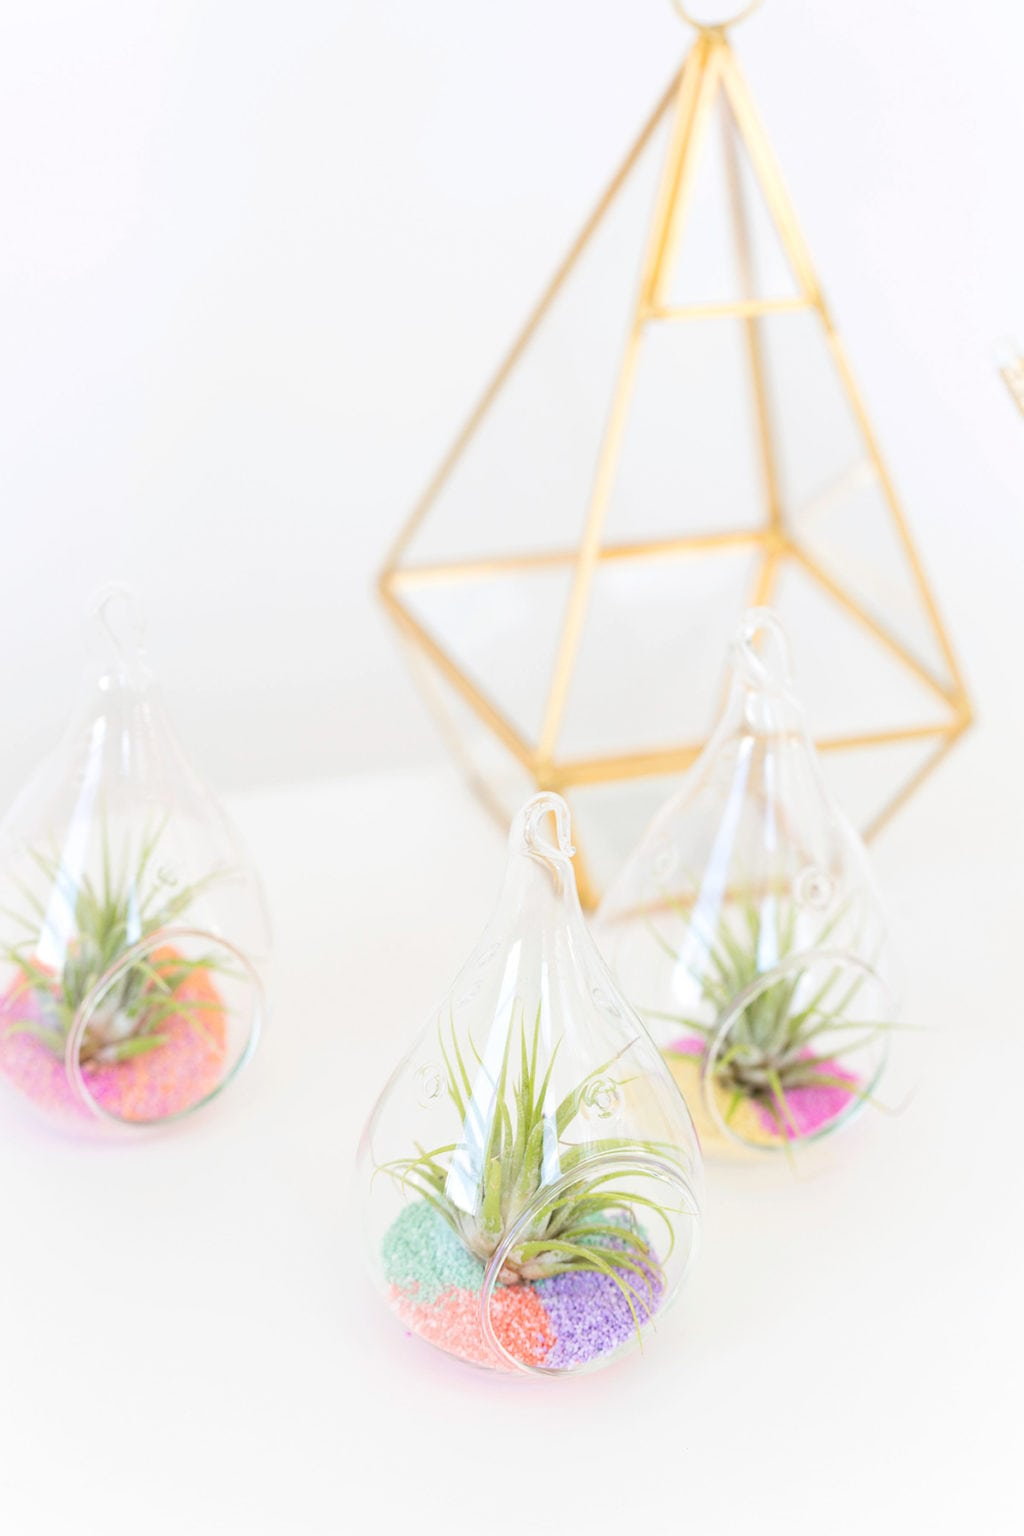 remember when you made colored sand as a kid? well, I'm giving it an adult makeover with these @methodhome and their #fearnomess campaign to make DIY Colored Sand Air Plants